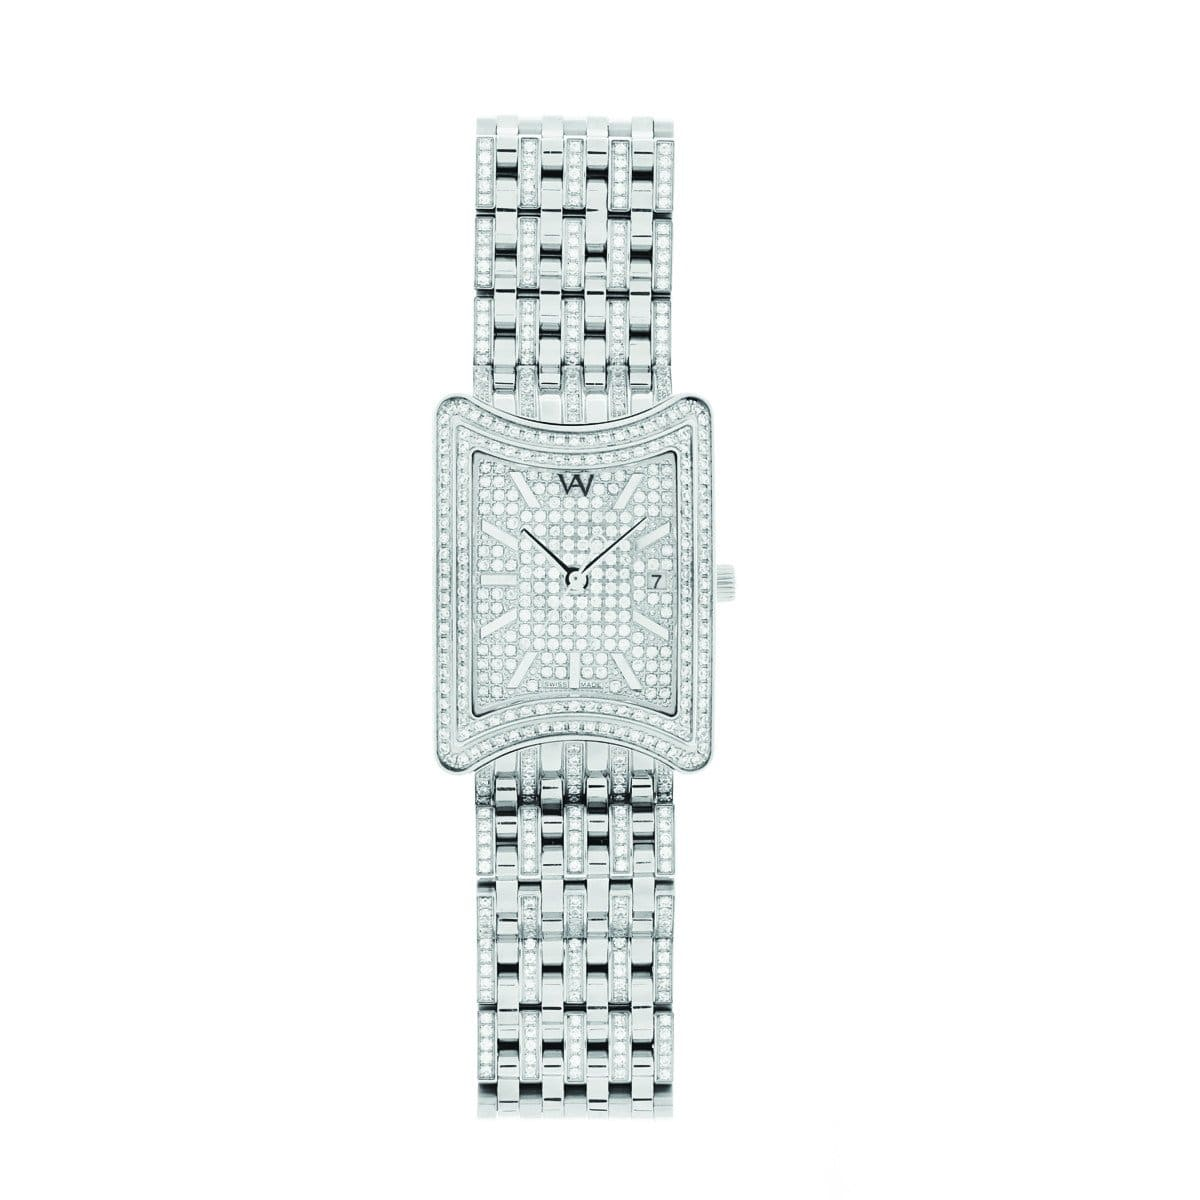 Aire Empress Swiss Made Full Diamond Luxury Limited Edition Watch